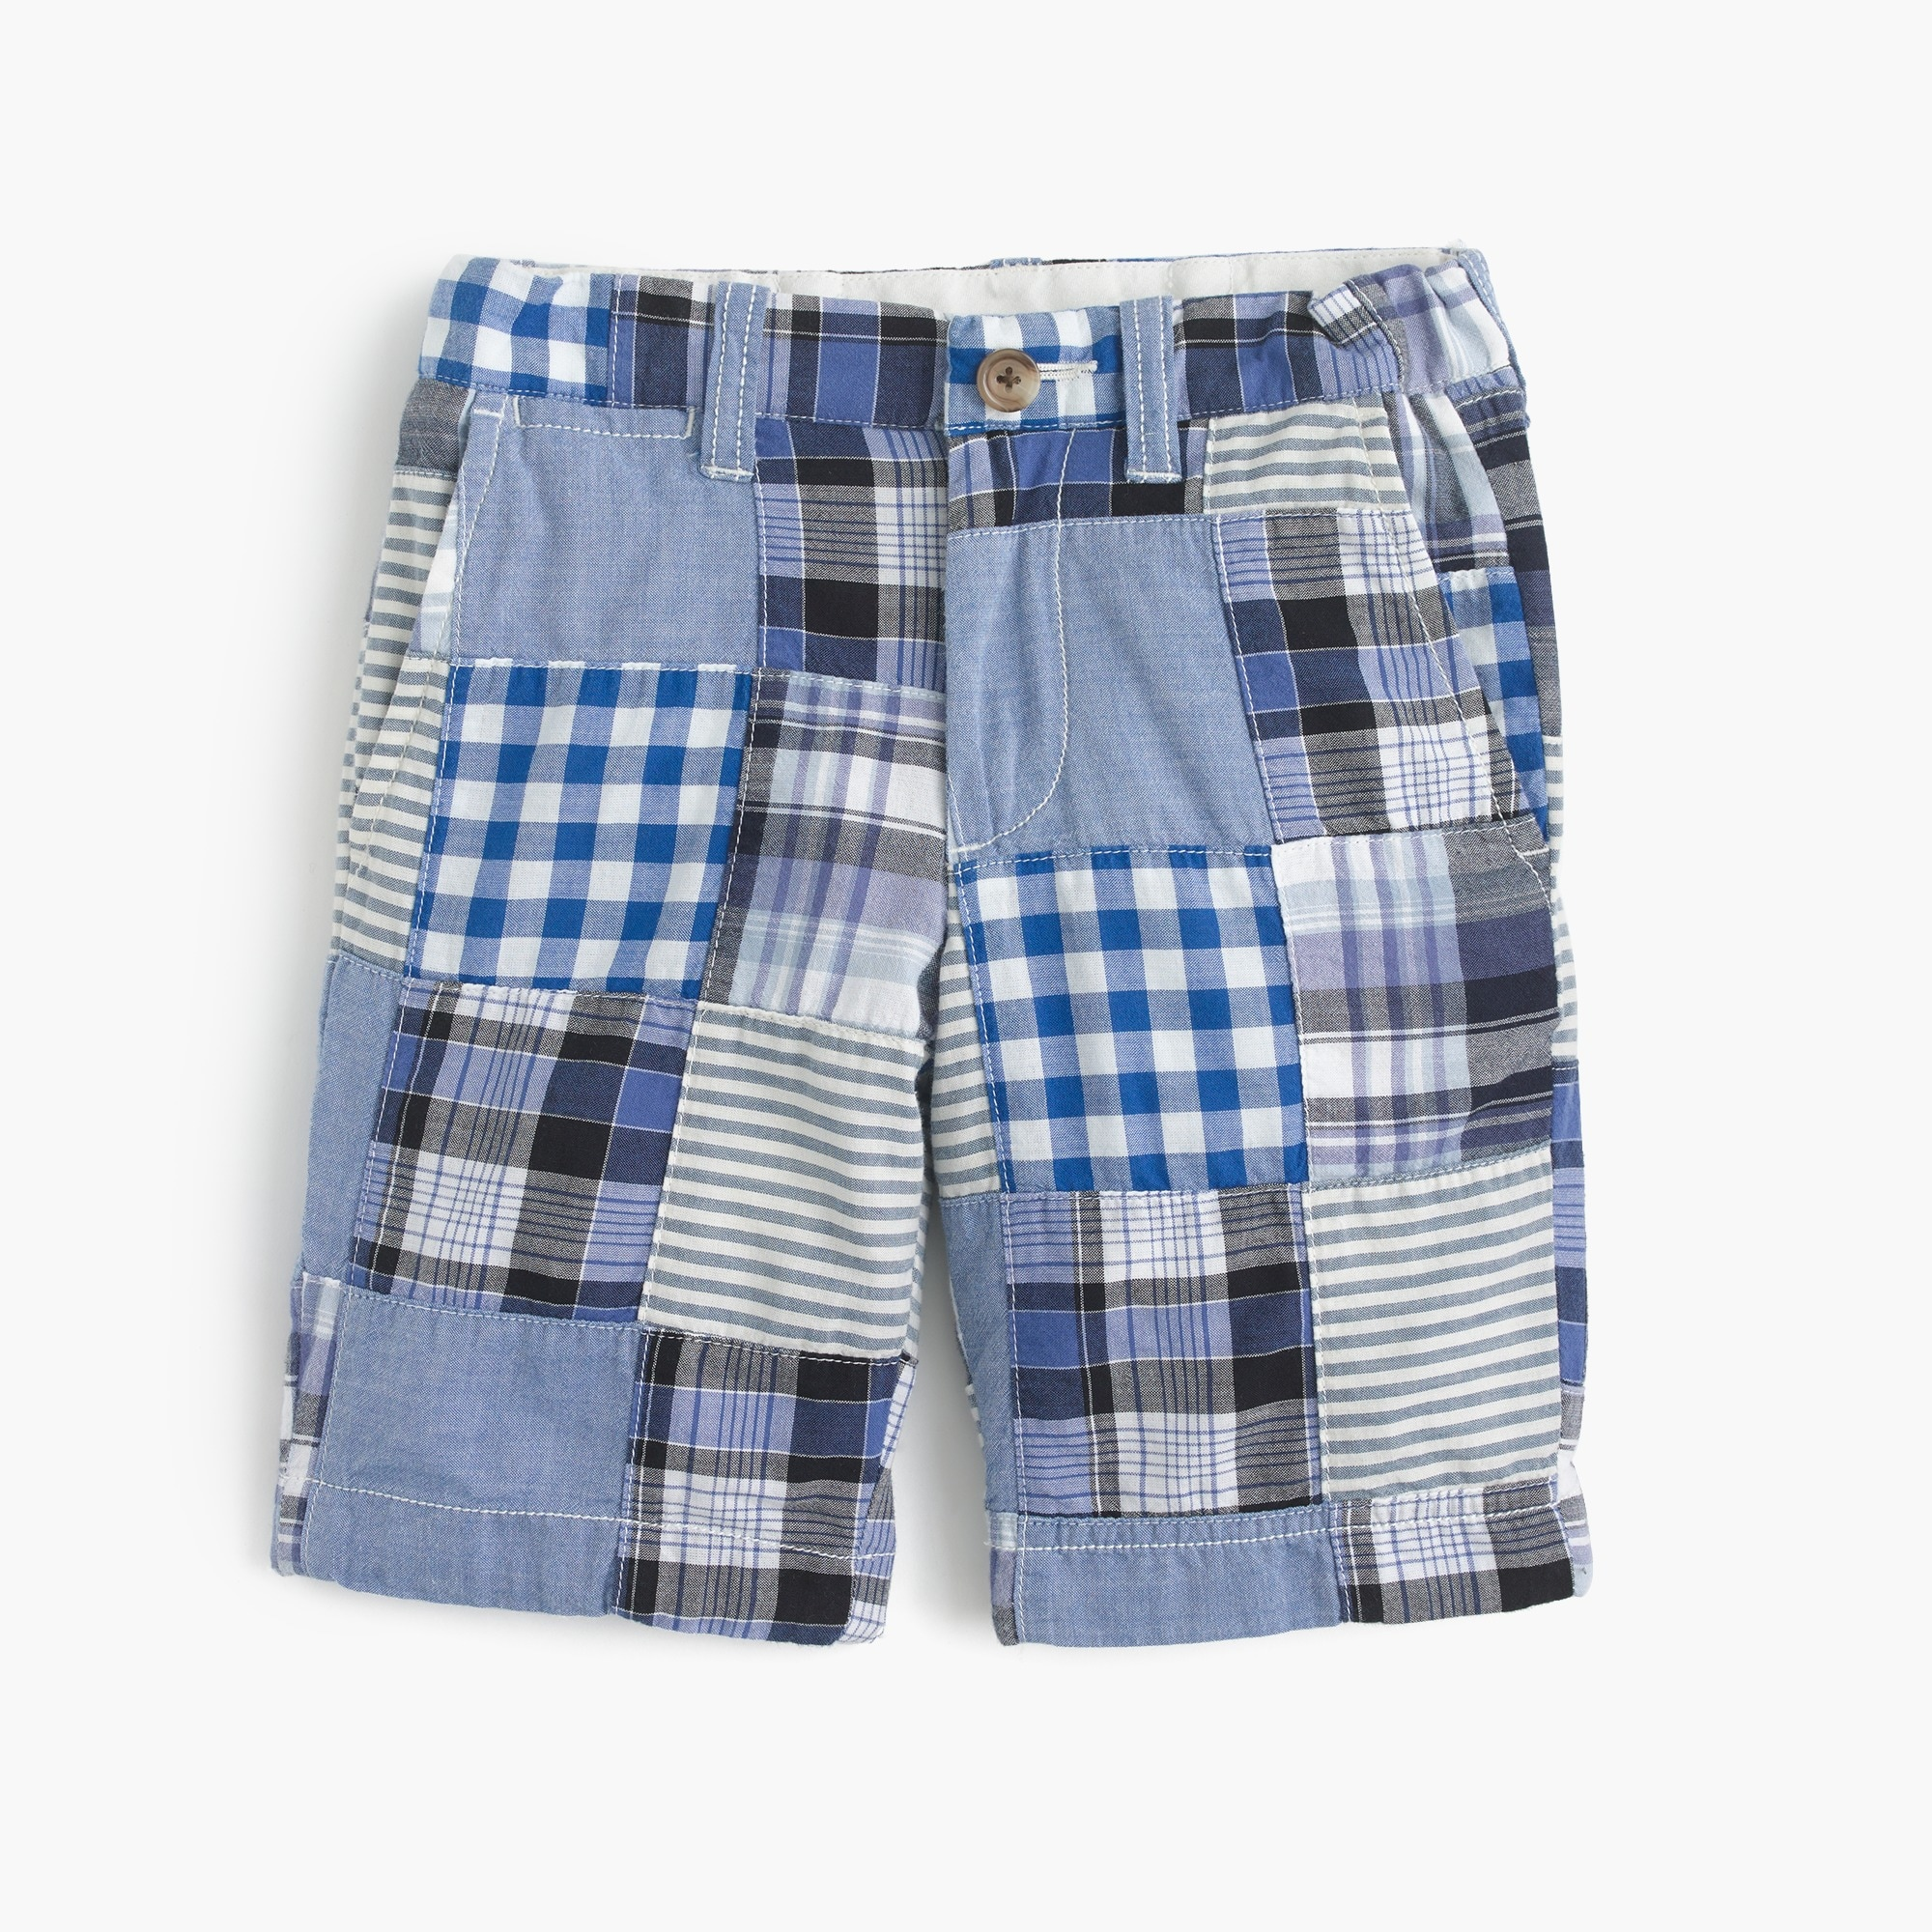 Image 1 for Boys' Stanton short in patchwork plaid